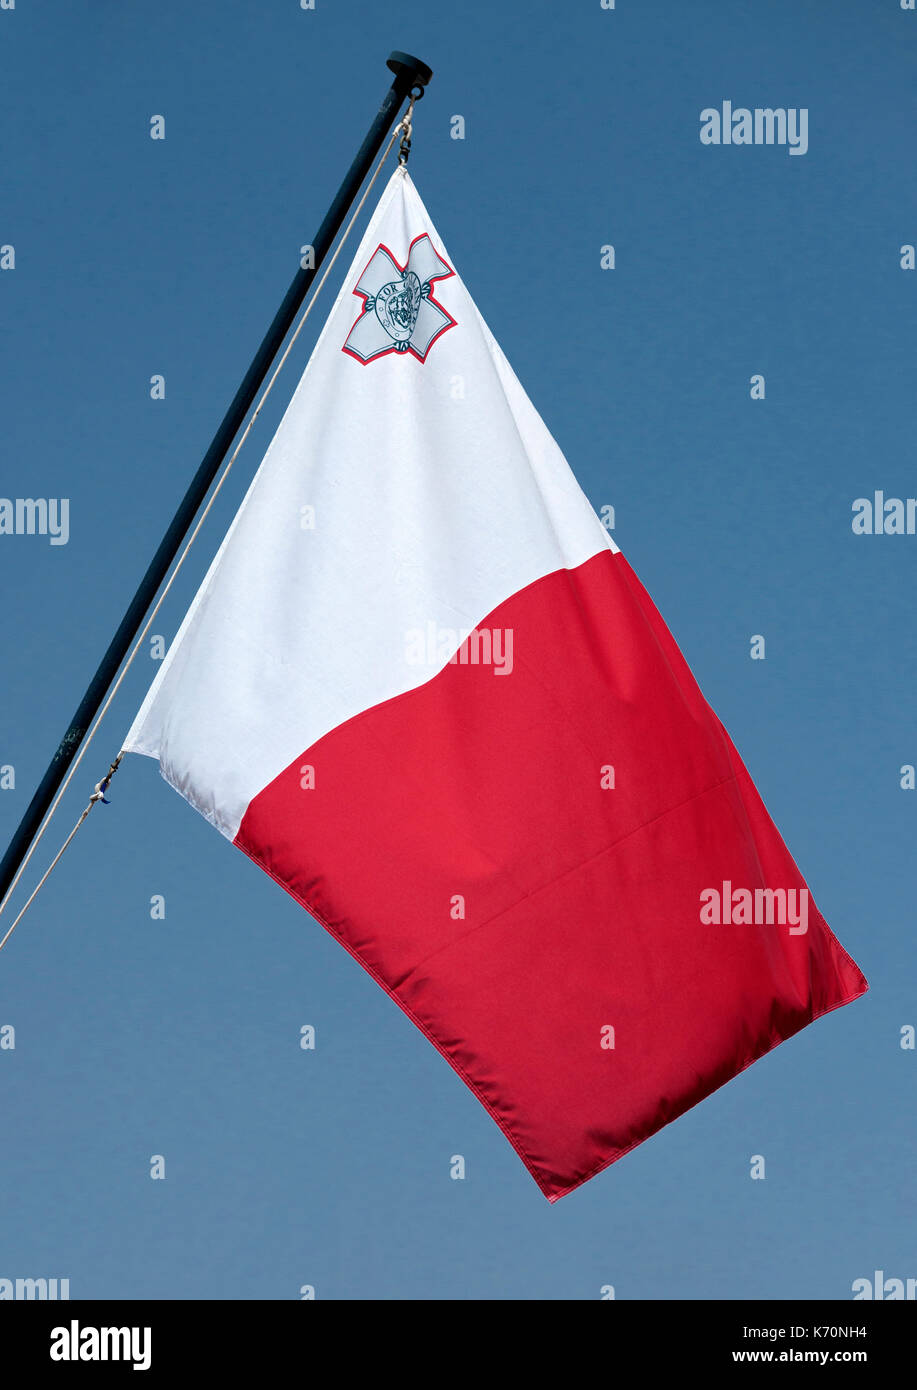 The flag of Malta. - Stock Image